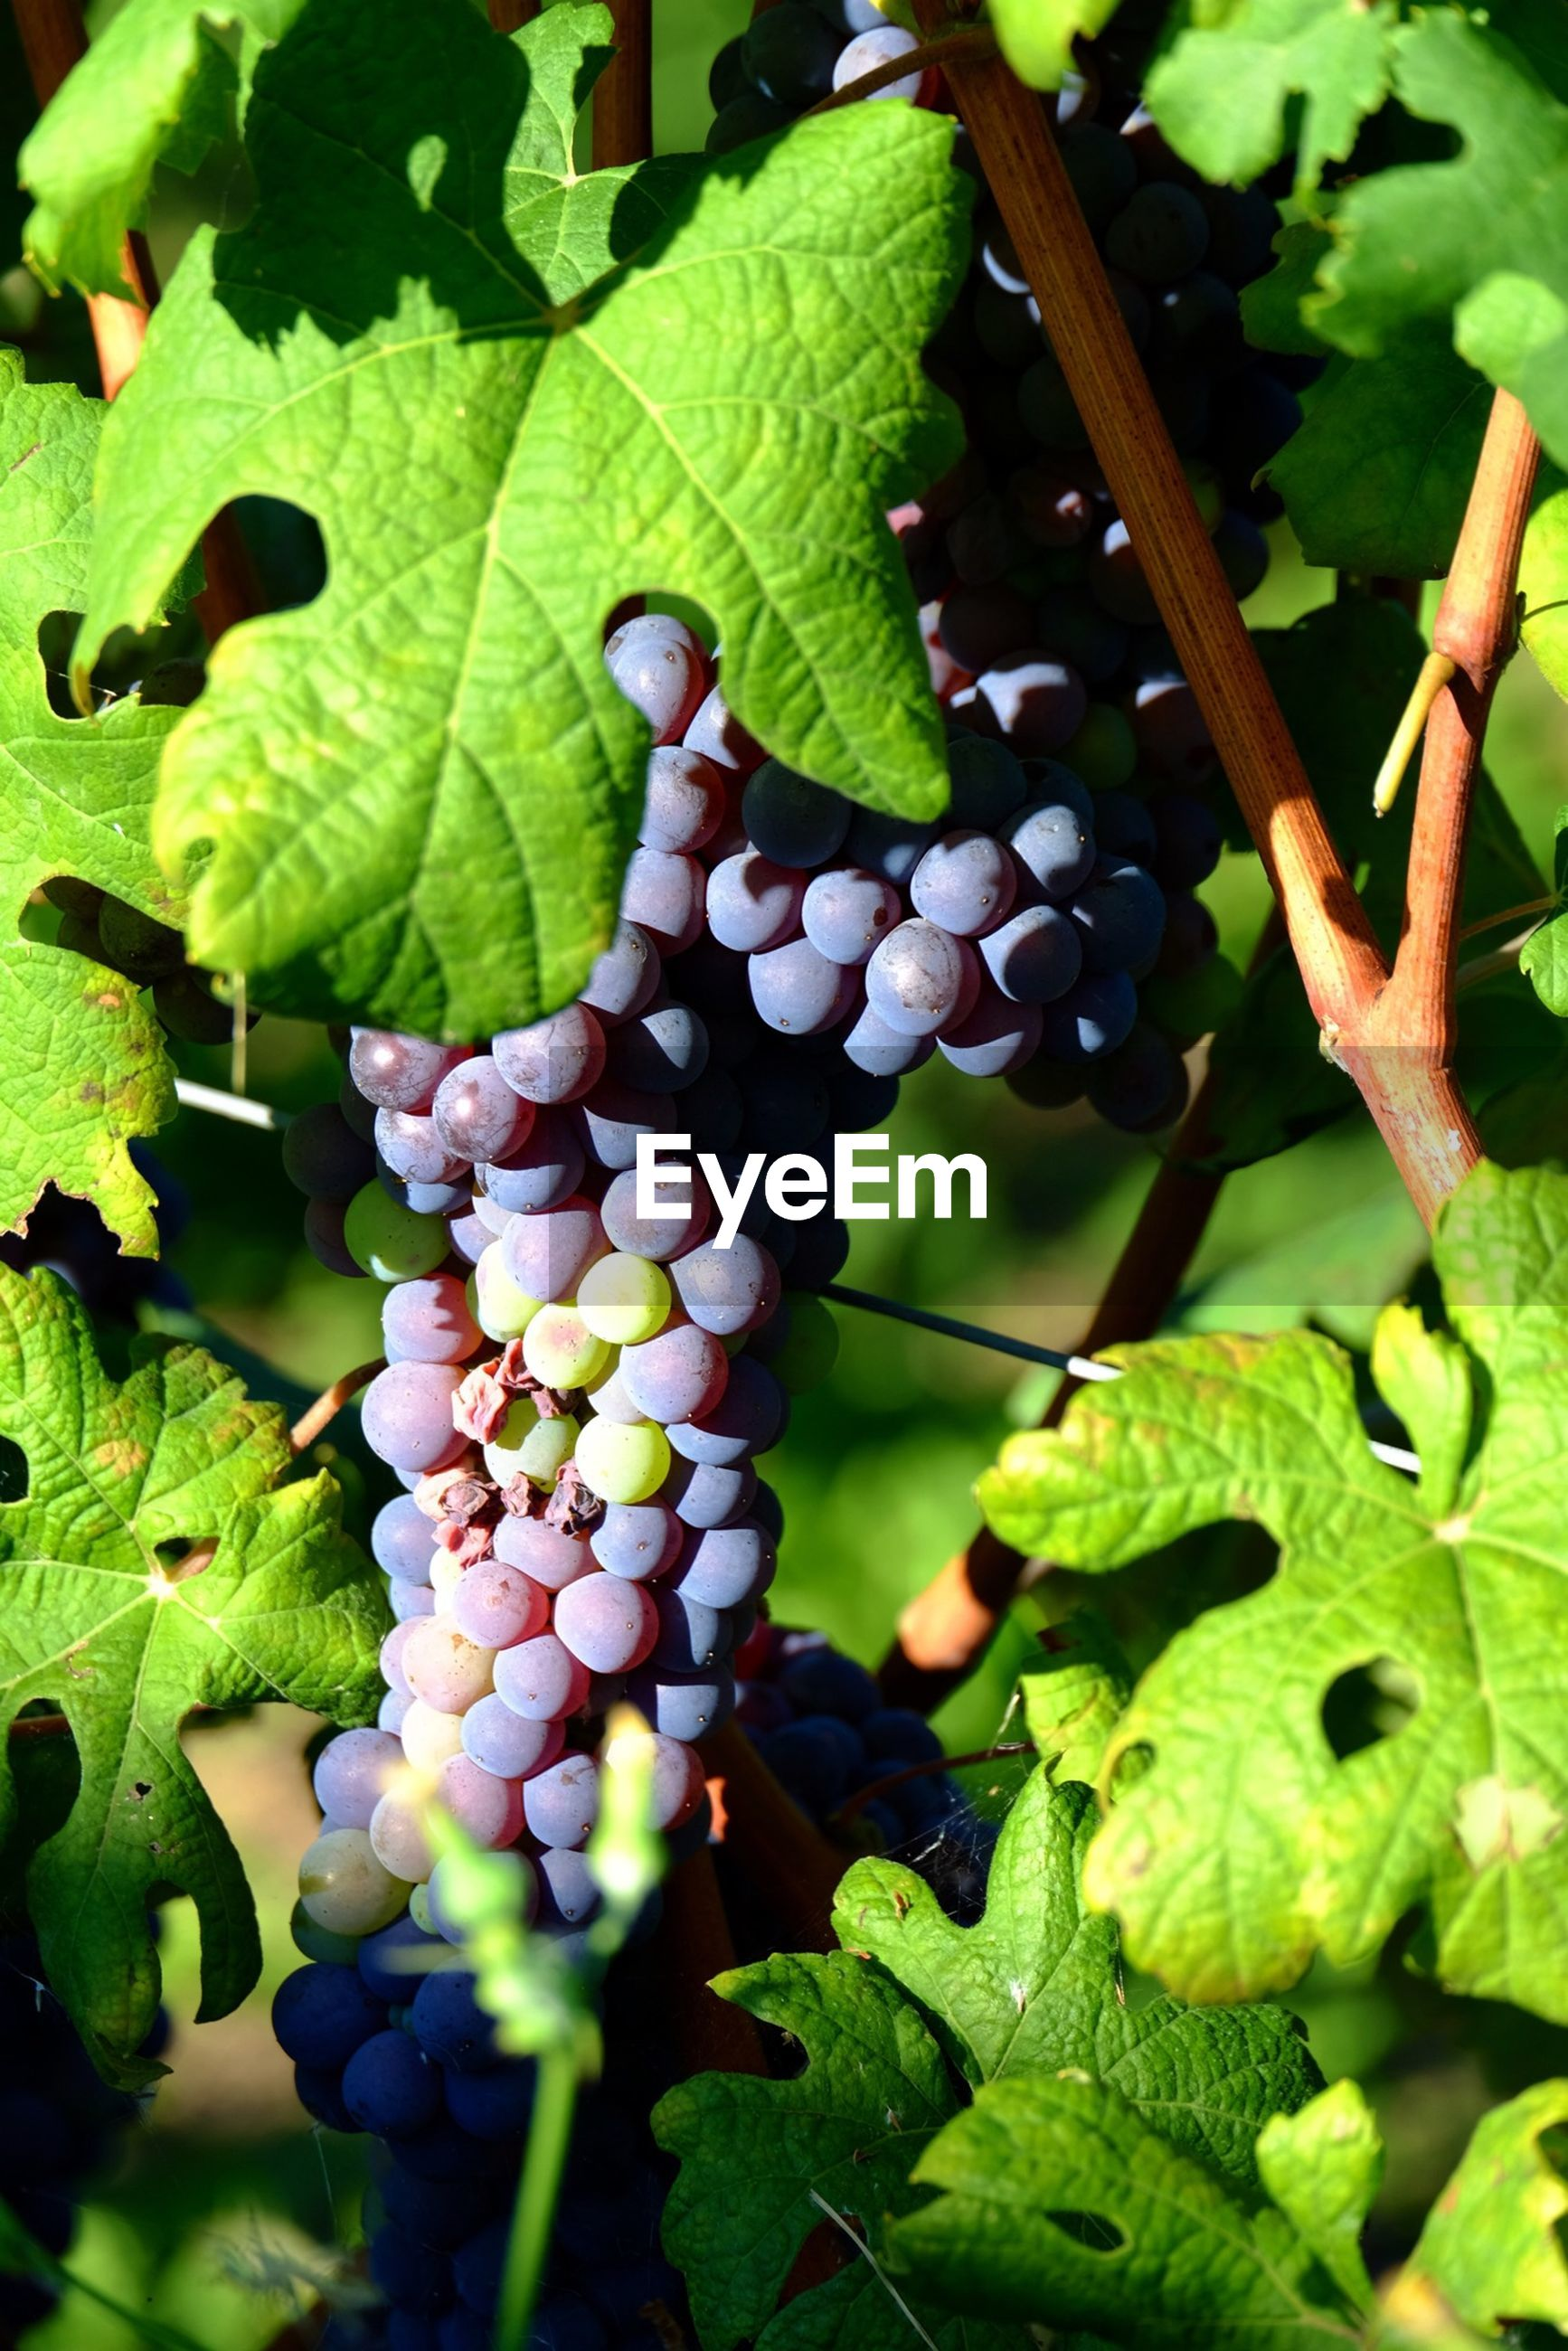 Close-up grapes growing in vineyard